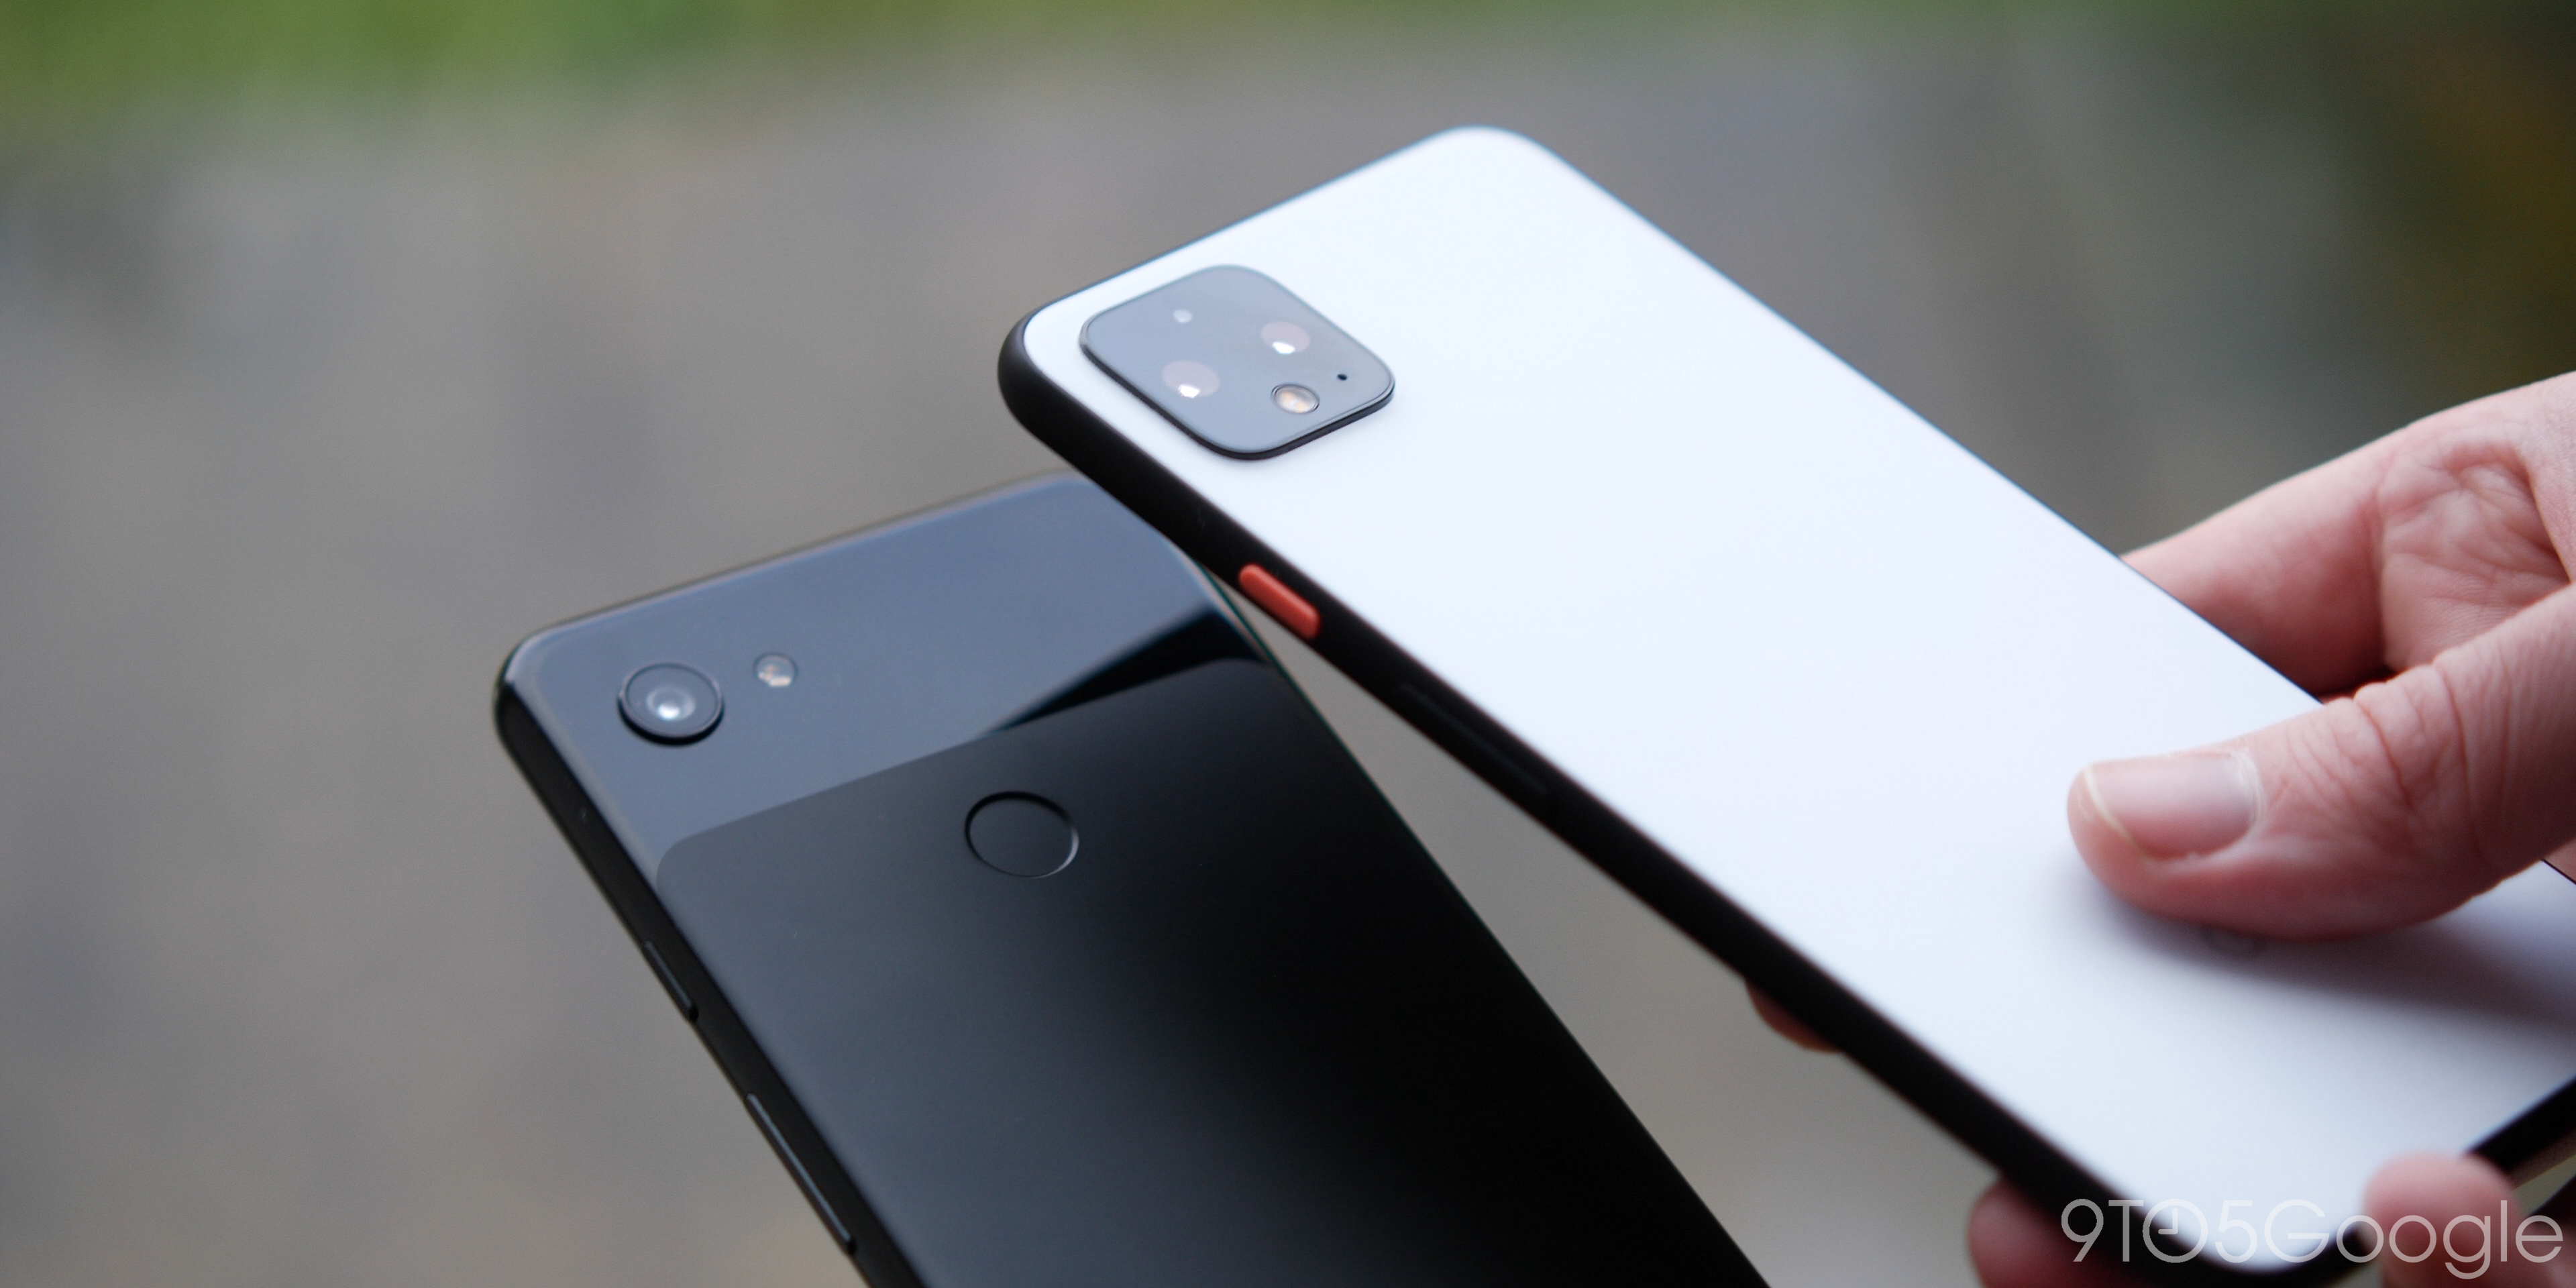 Google Pixel 5a Makes First Appearance In Aosp 9to5google